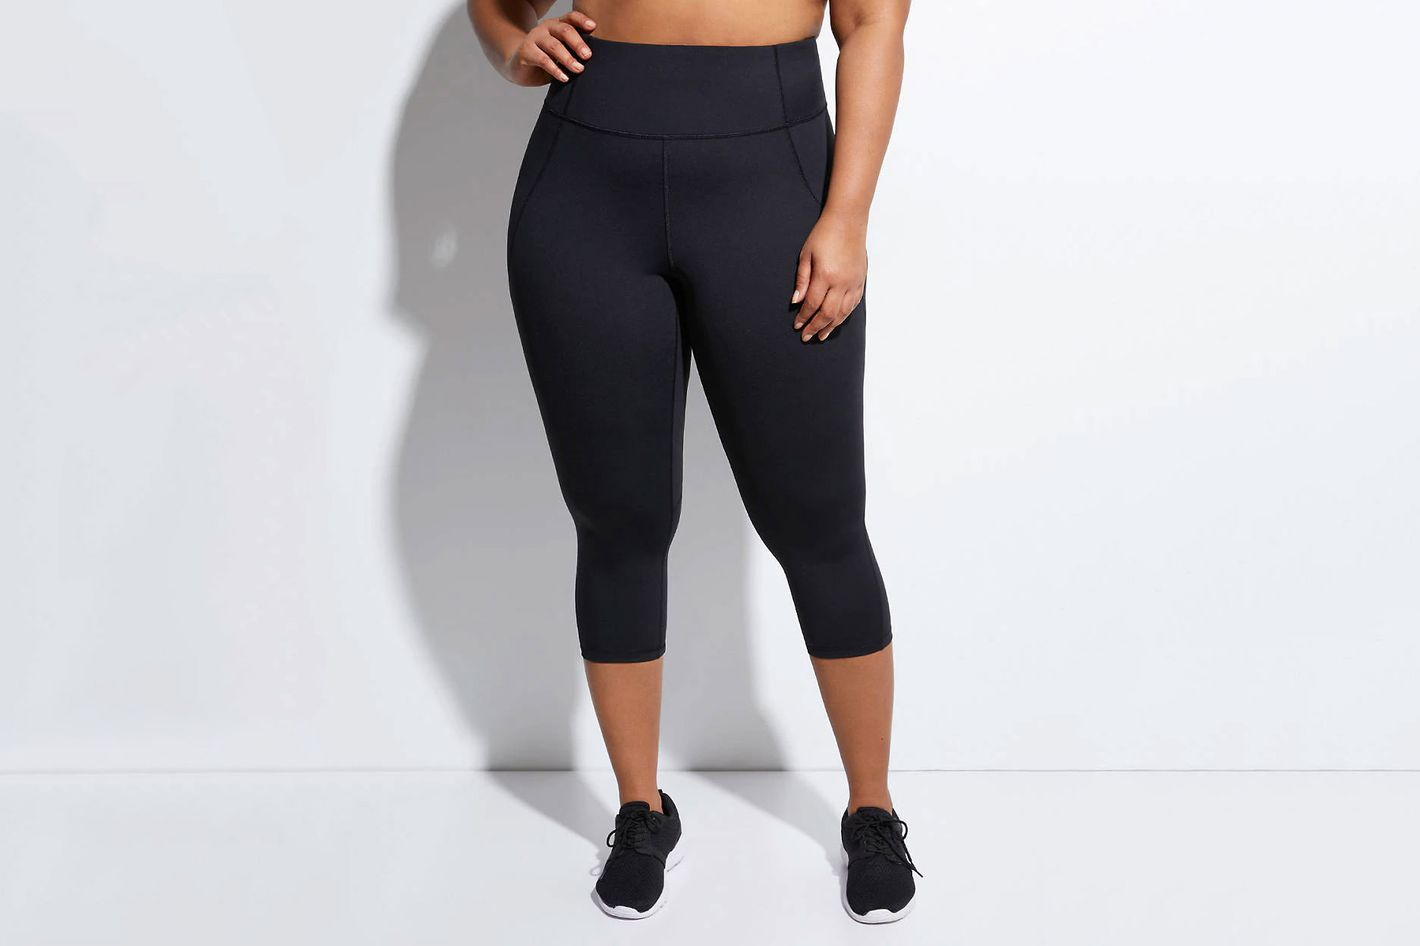 e4841f49758b34 The Best Plus-Size Workout Clothes